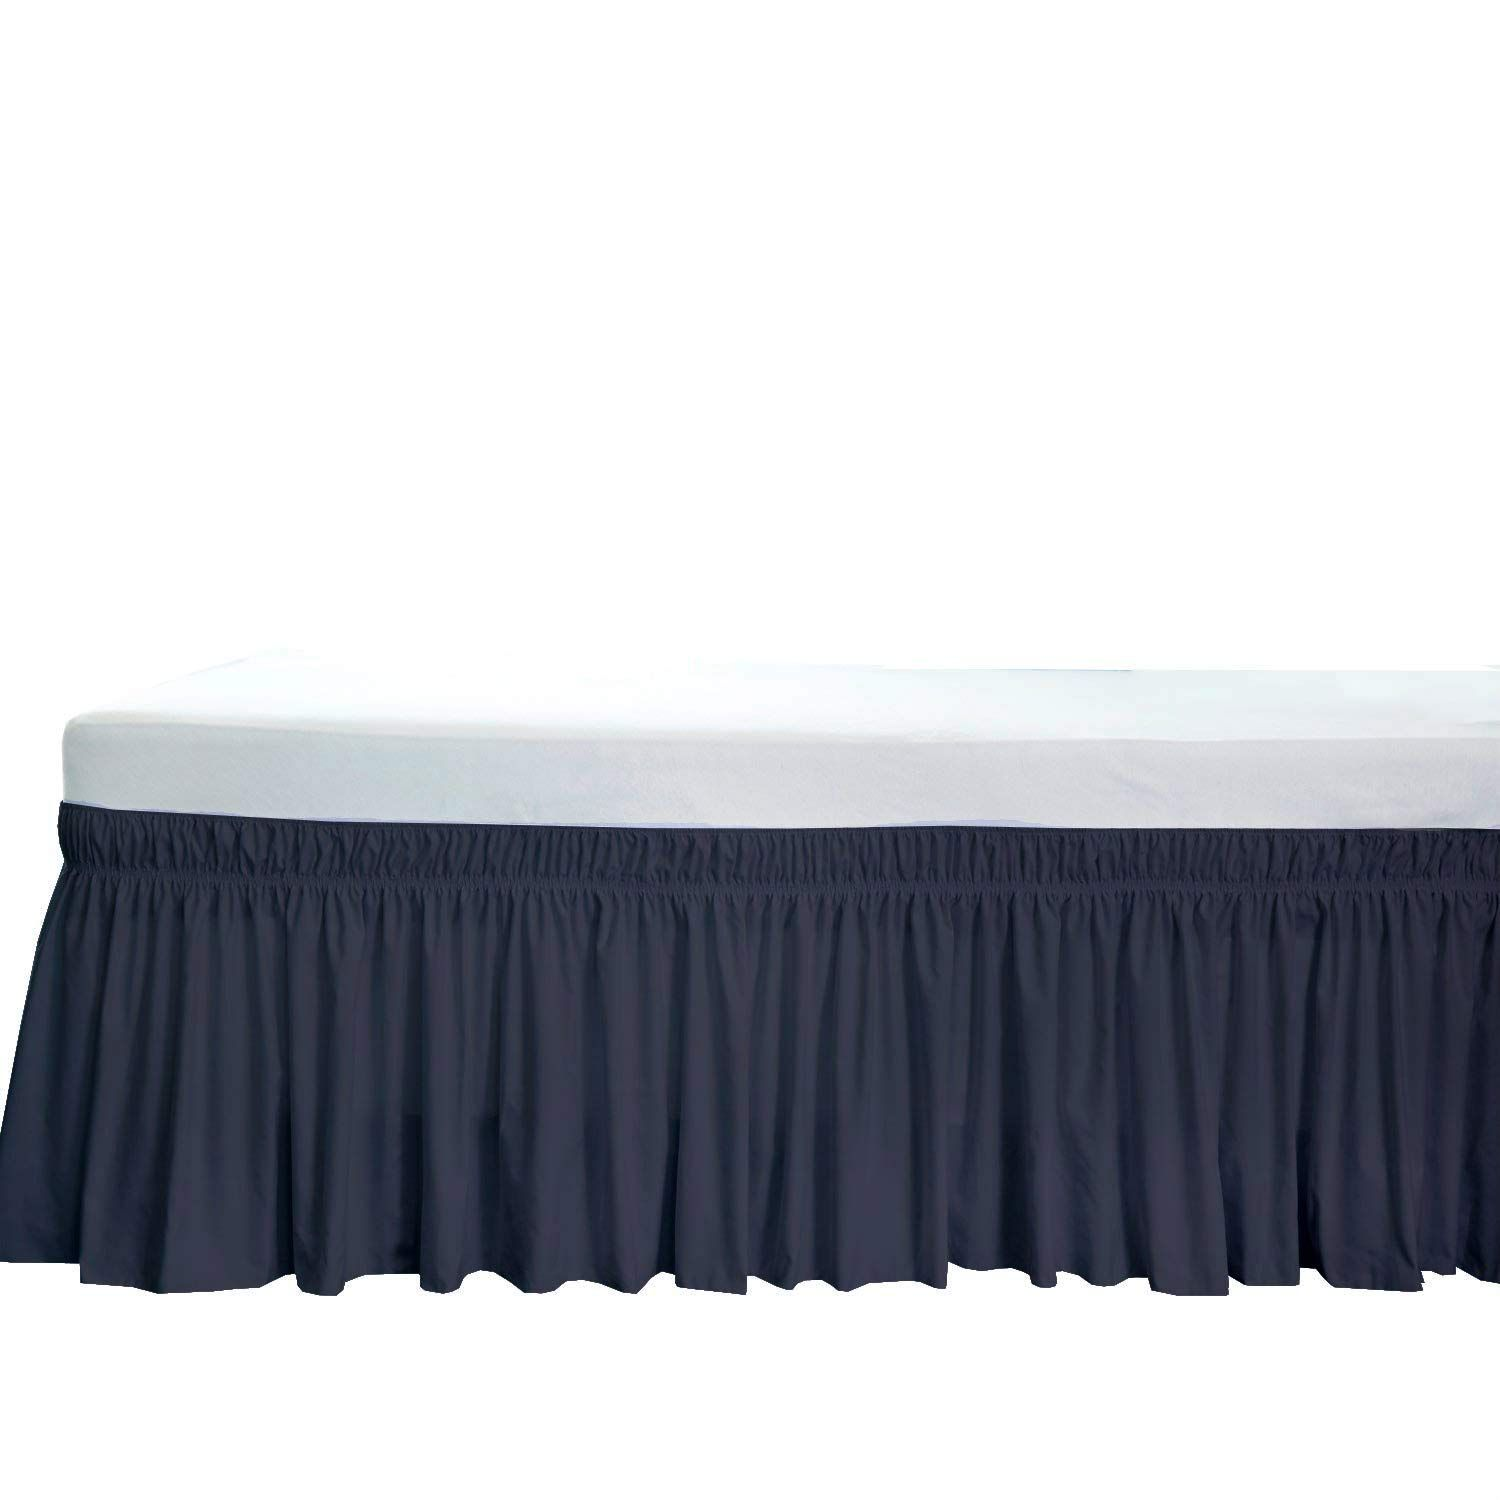 Spector Linens Easy On Off Twin Wrap Around Bed Skirt Solid Navy Blue With 30 Inch Drop Length 600 Thread Count 3 Side Cove Bedskirt Ruffle Bedding Dust Ruffle